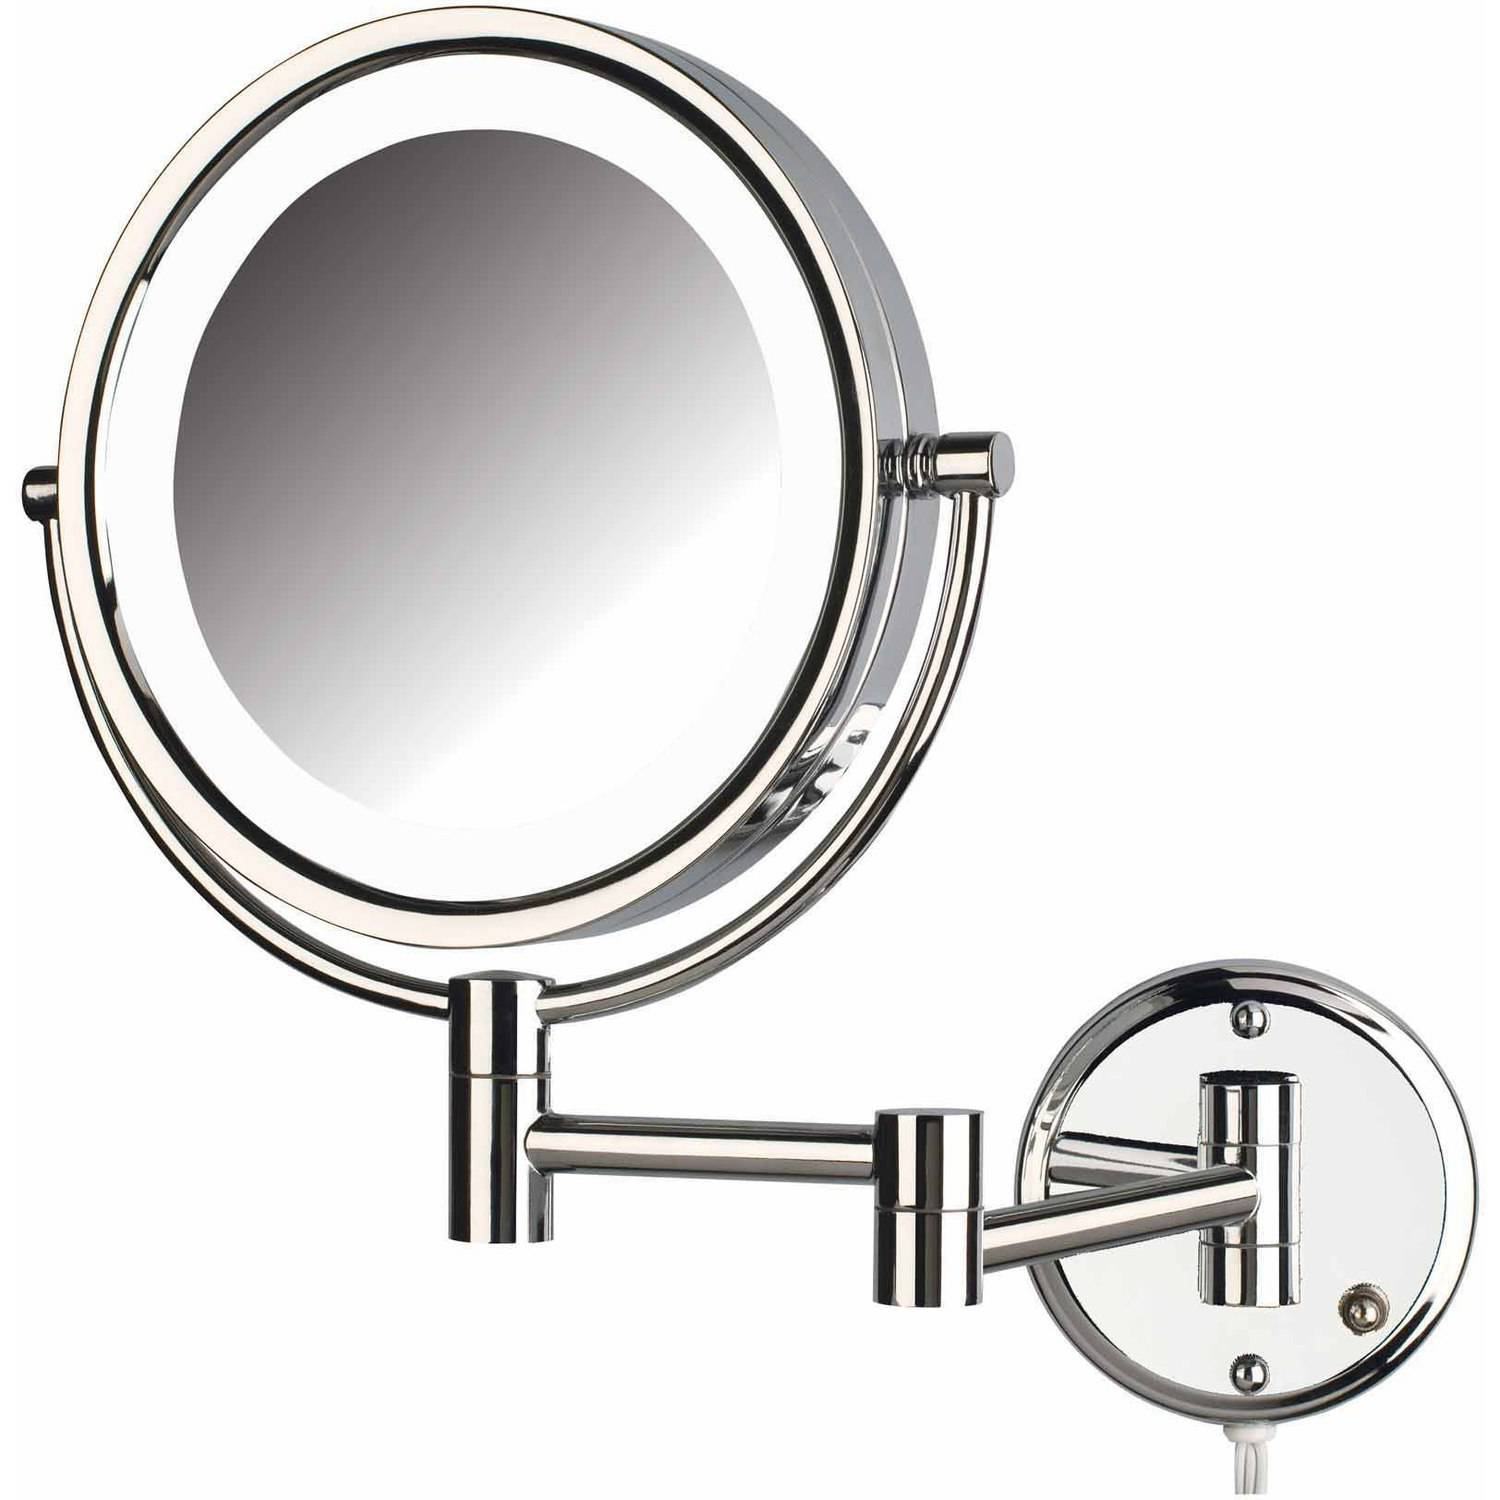 "Jerdon HL88CL 8.5"" LED Lighted Wall Mount Makeup Mirror with 8x Magnification, Chrome Finish"